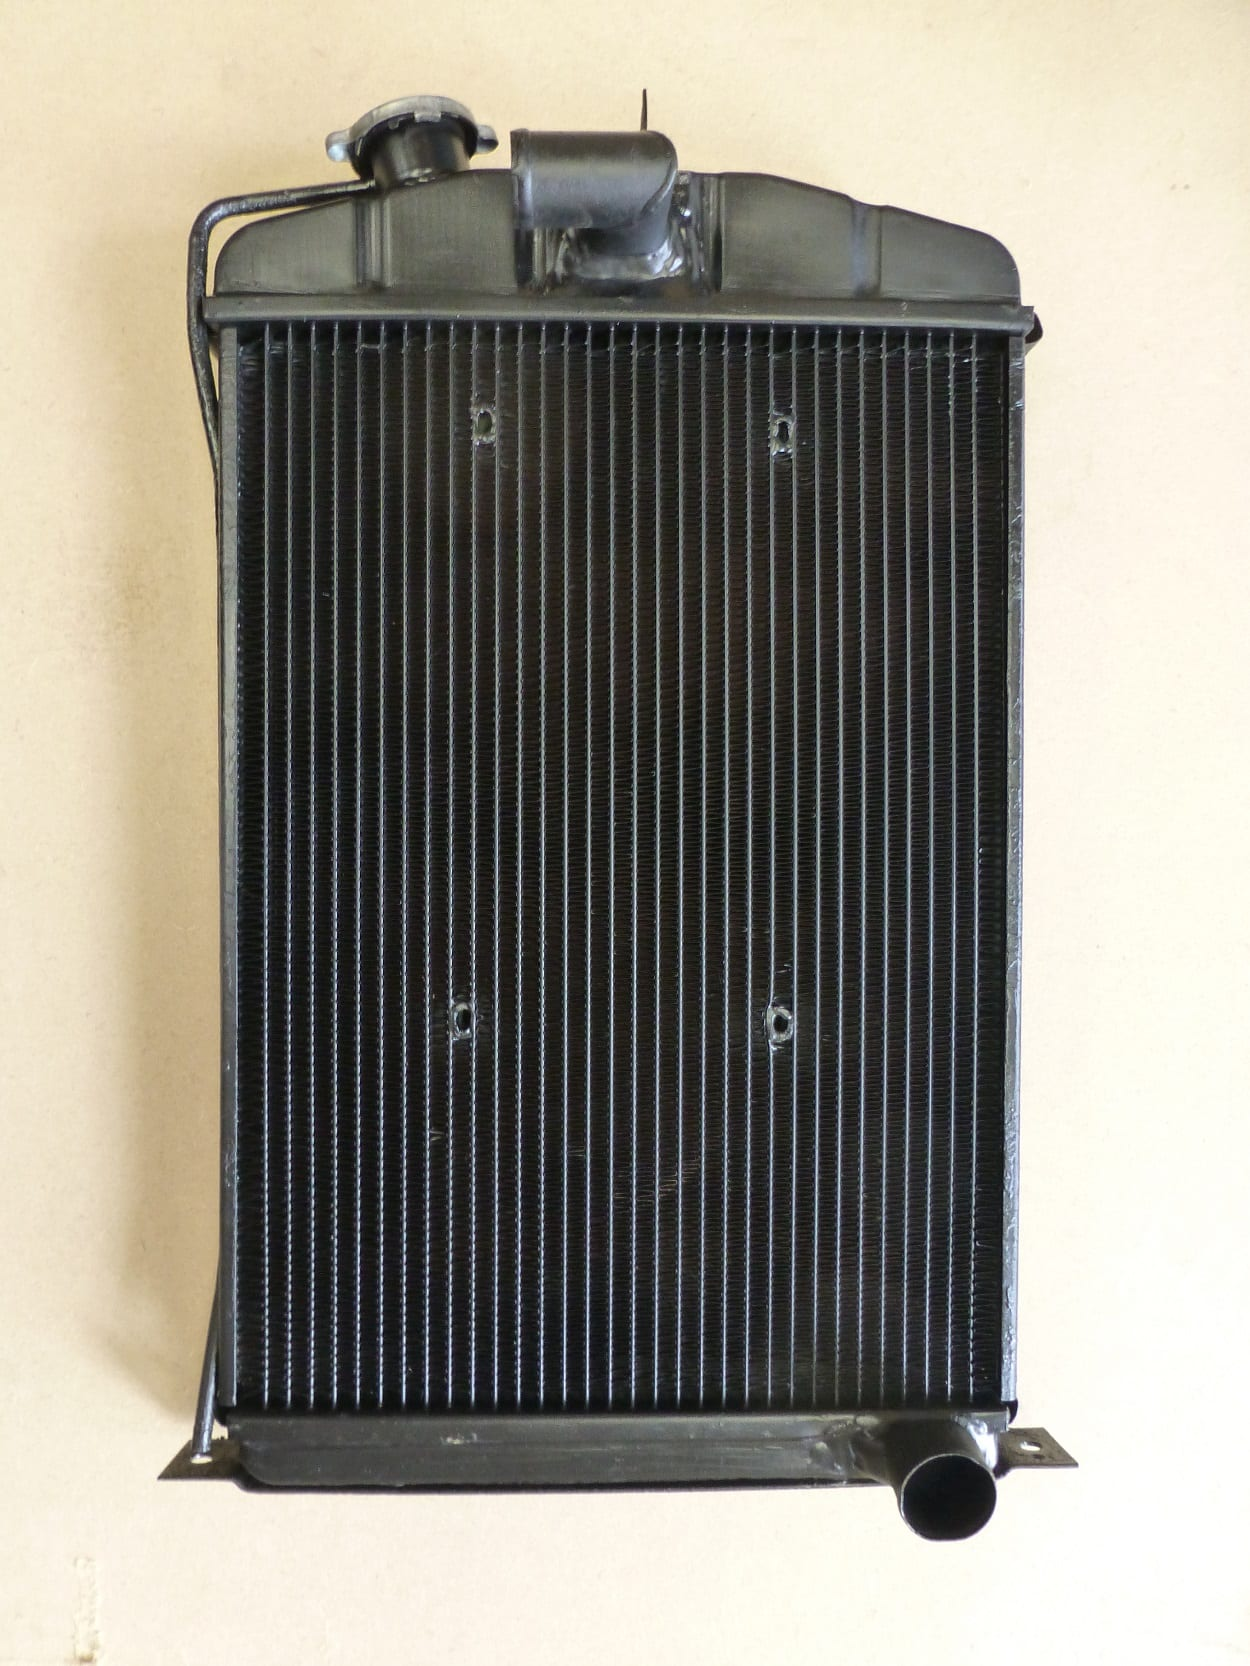 Austin 7 Radiator Recored with tubes through core for electric fan